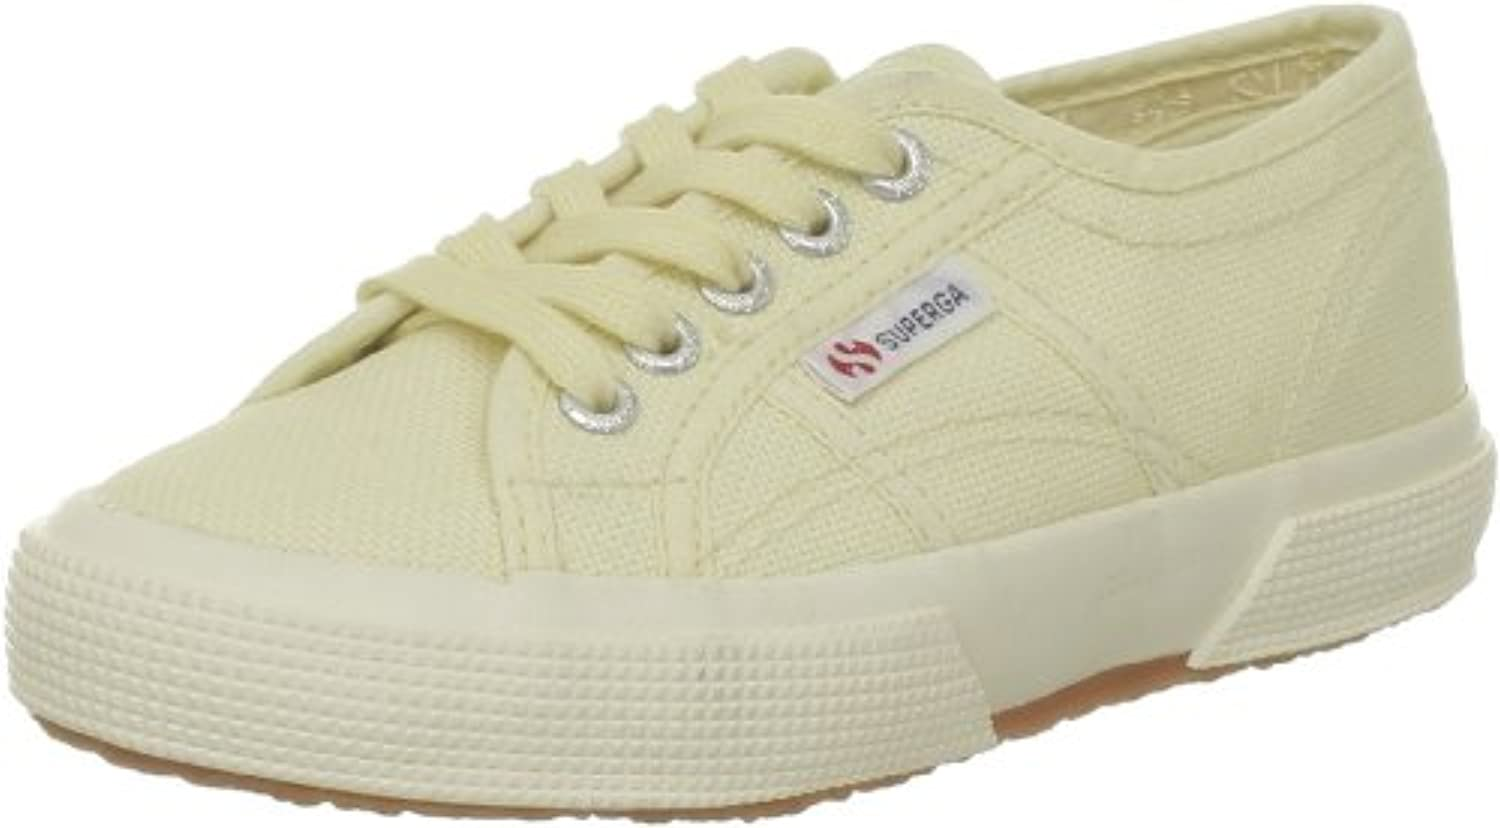 Superga 2750 Jcot Classic, Unisex Kids' Low-Top Sneakers, Pink (Dusty Rose), 1 Child UK (33 EU)